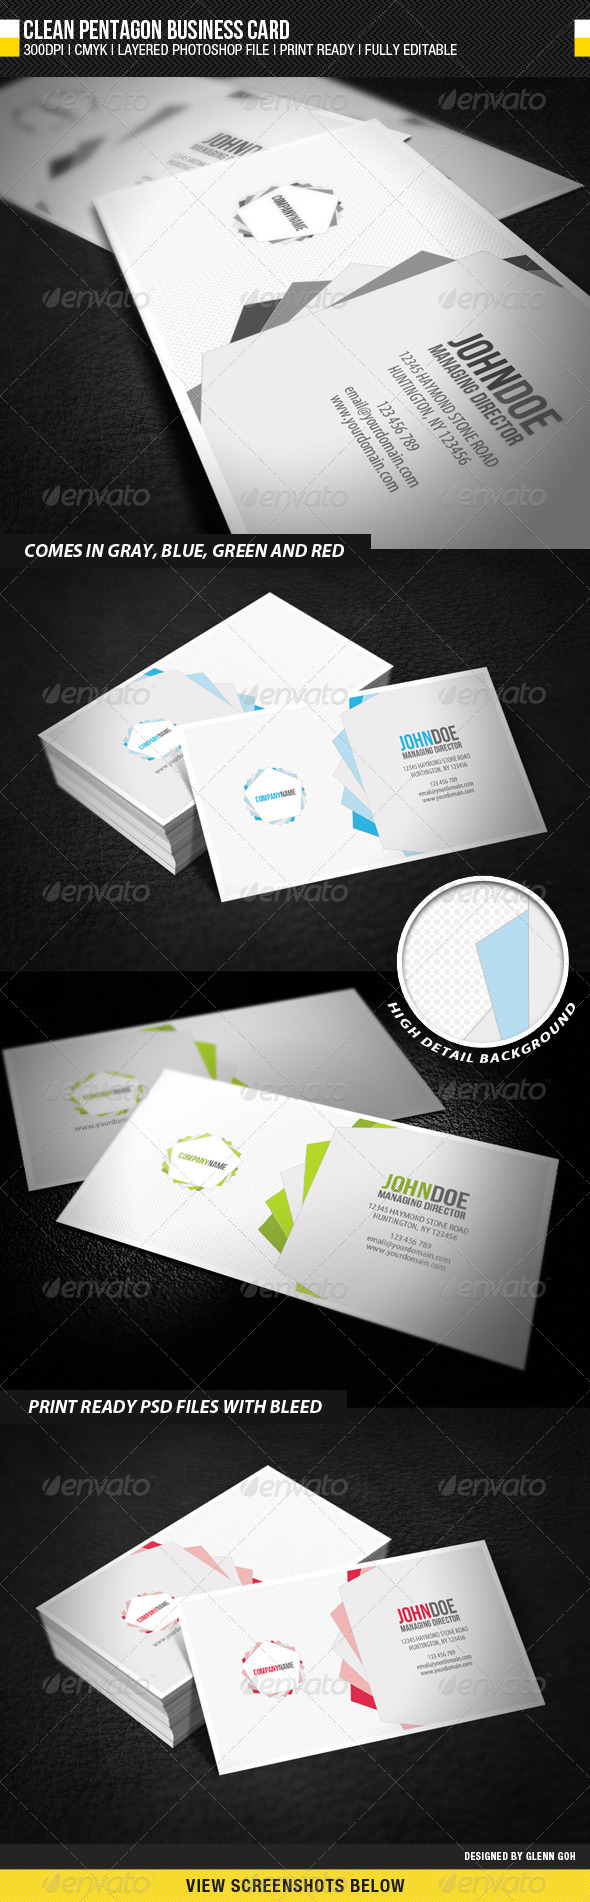 Clean Pentagon Business Card - Creative Business Cards